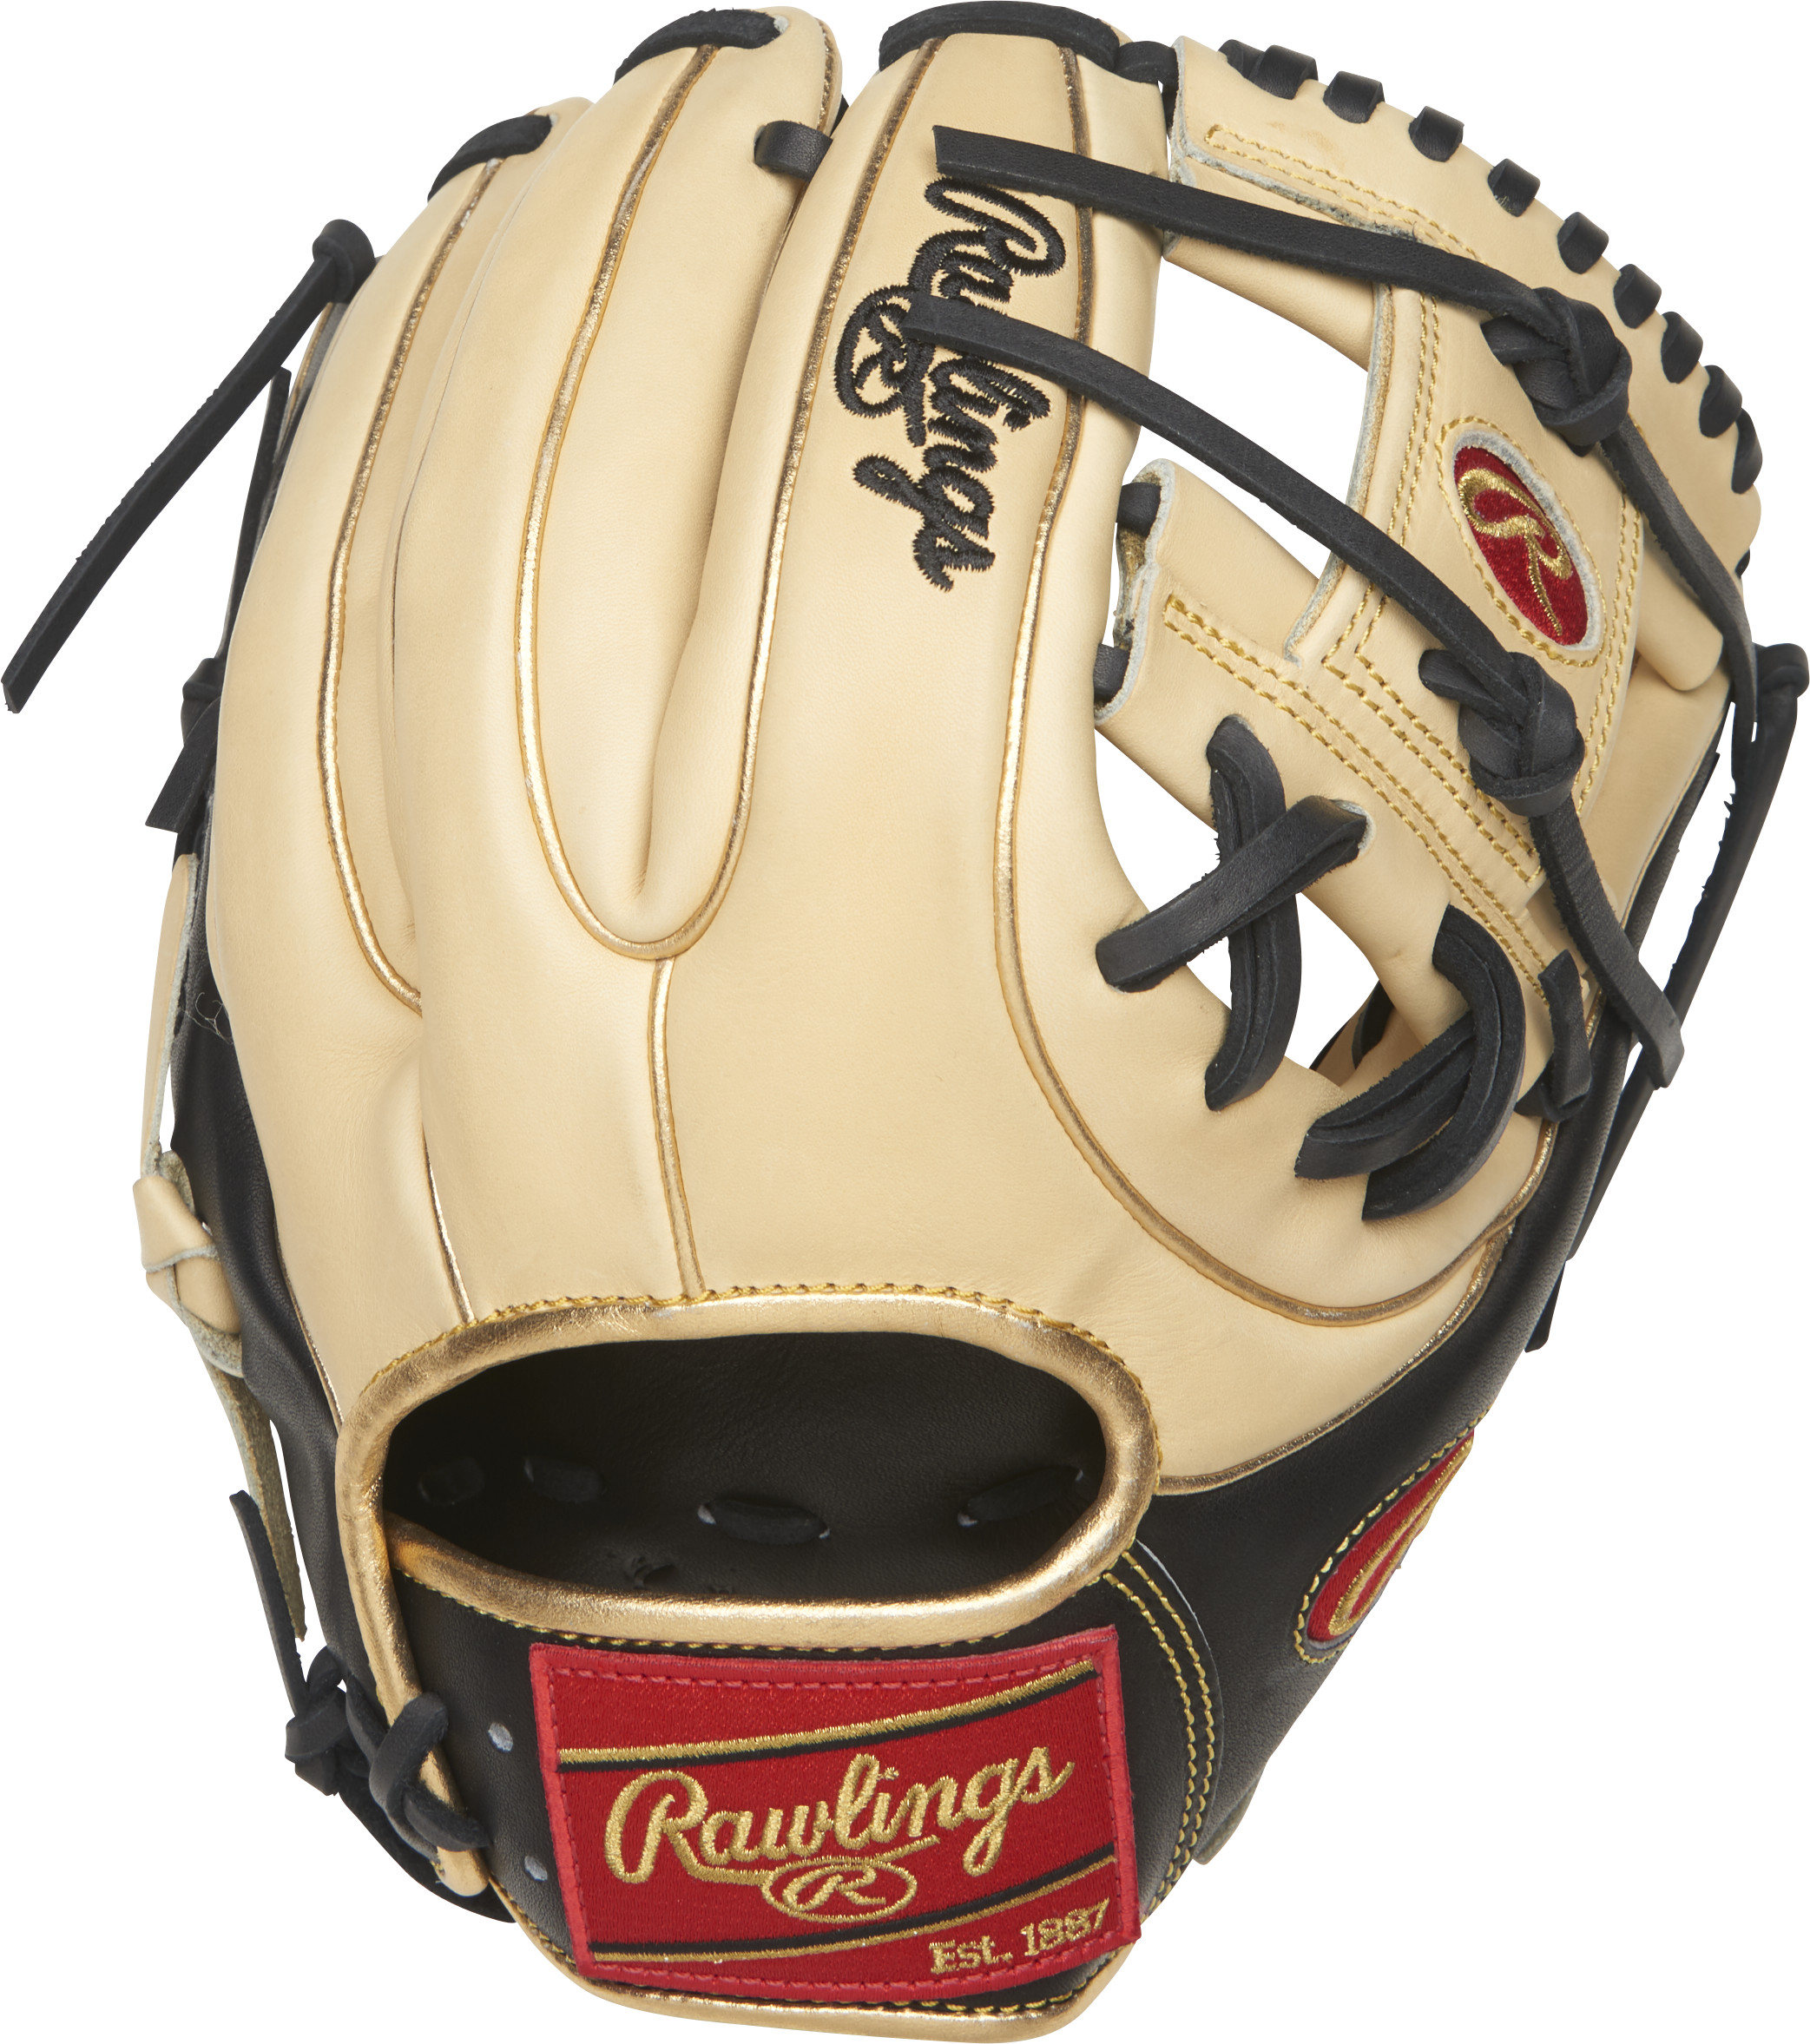 http://www.bestbatdeals.com/images/gloves/rawlings/PRO234-2CBG-2.jpg